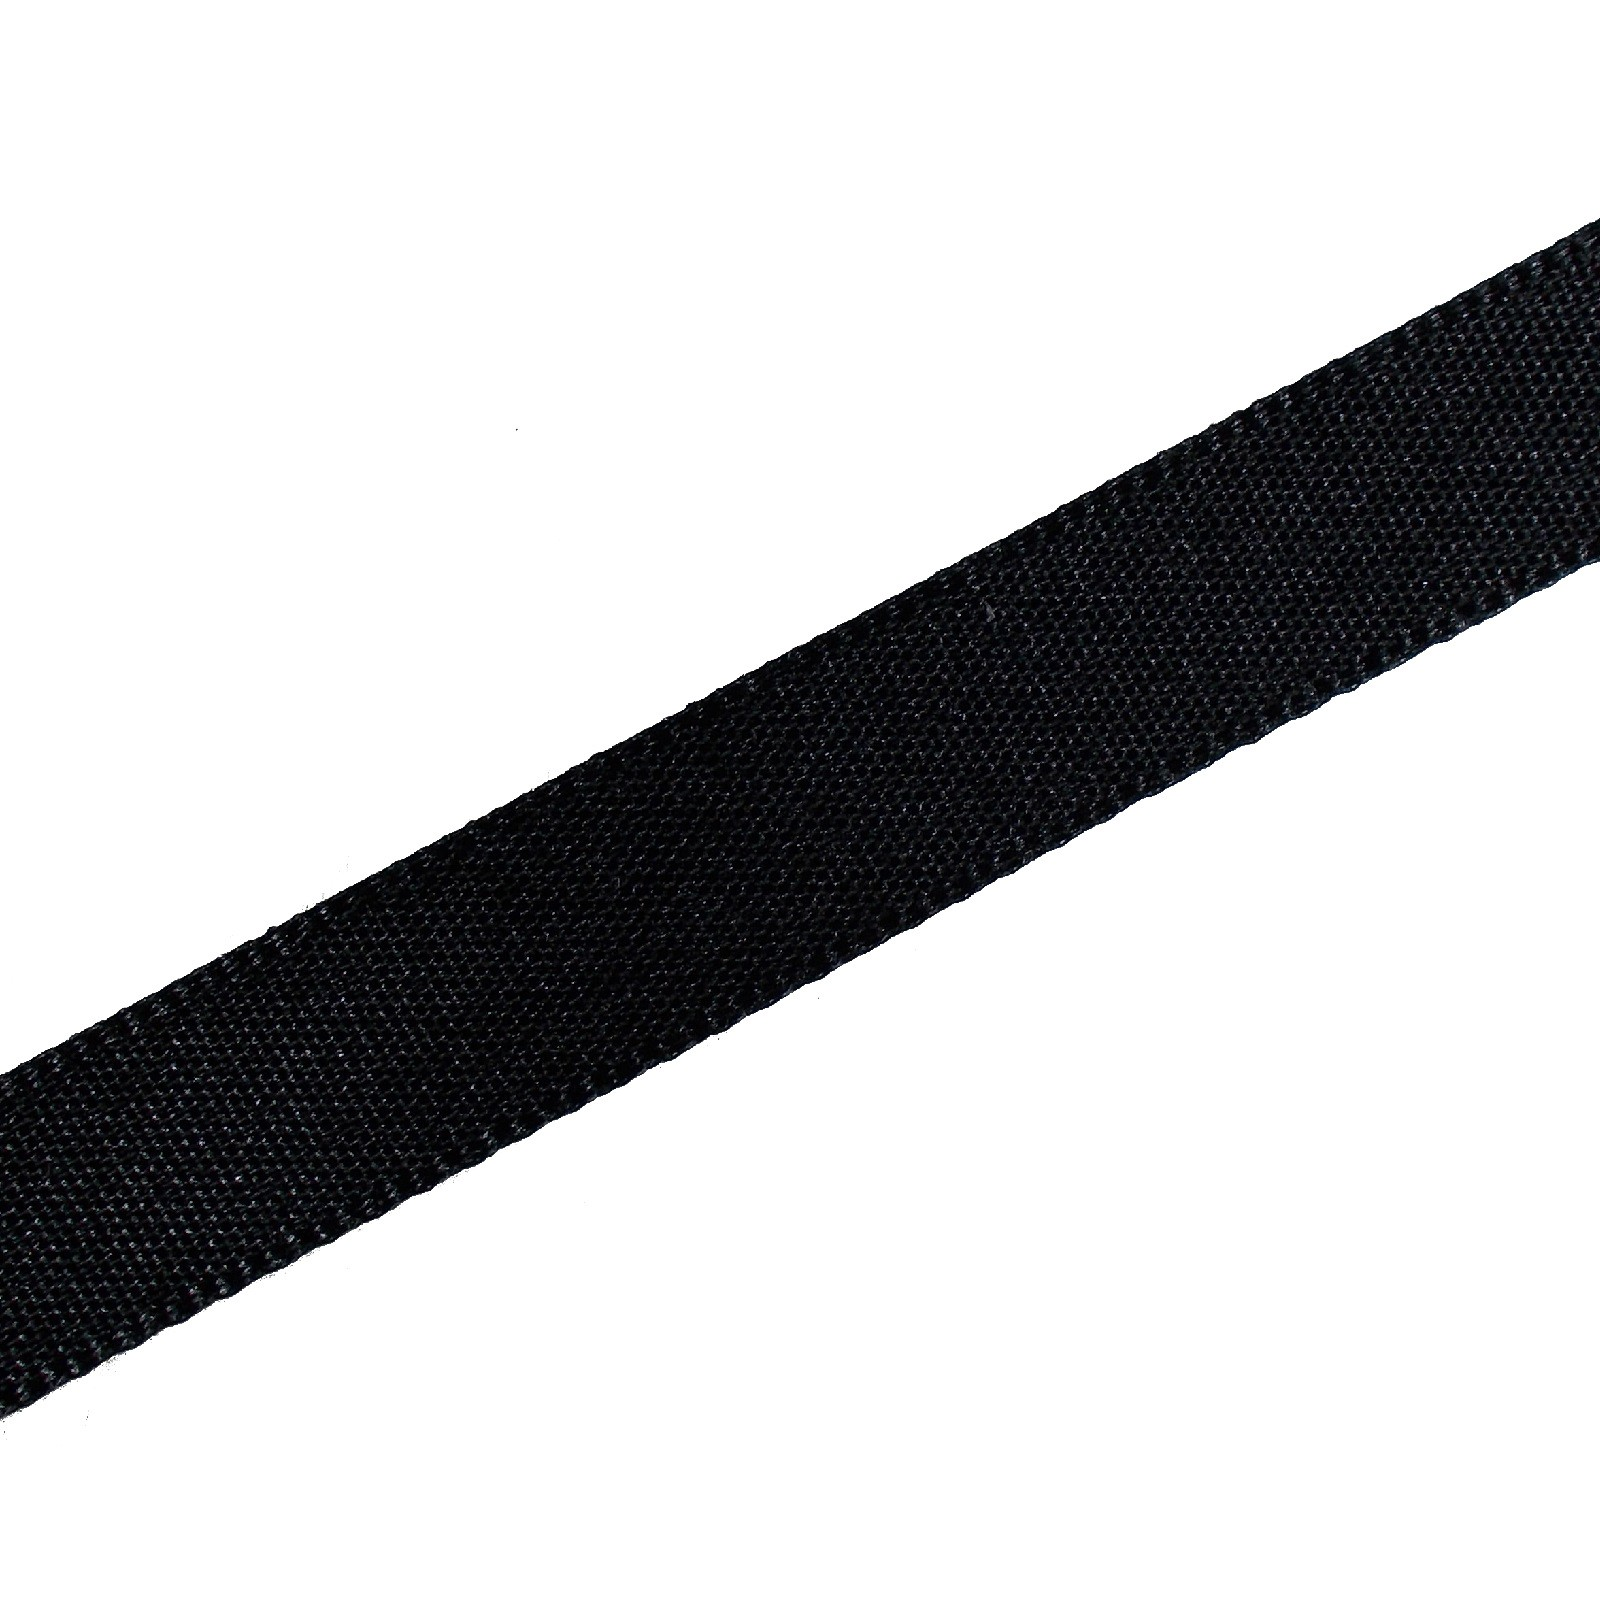 Berisfords Seam Binding Polyester Ribbon Tape 12mm wide Black 3 metre length